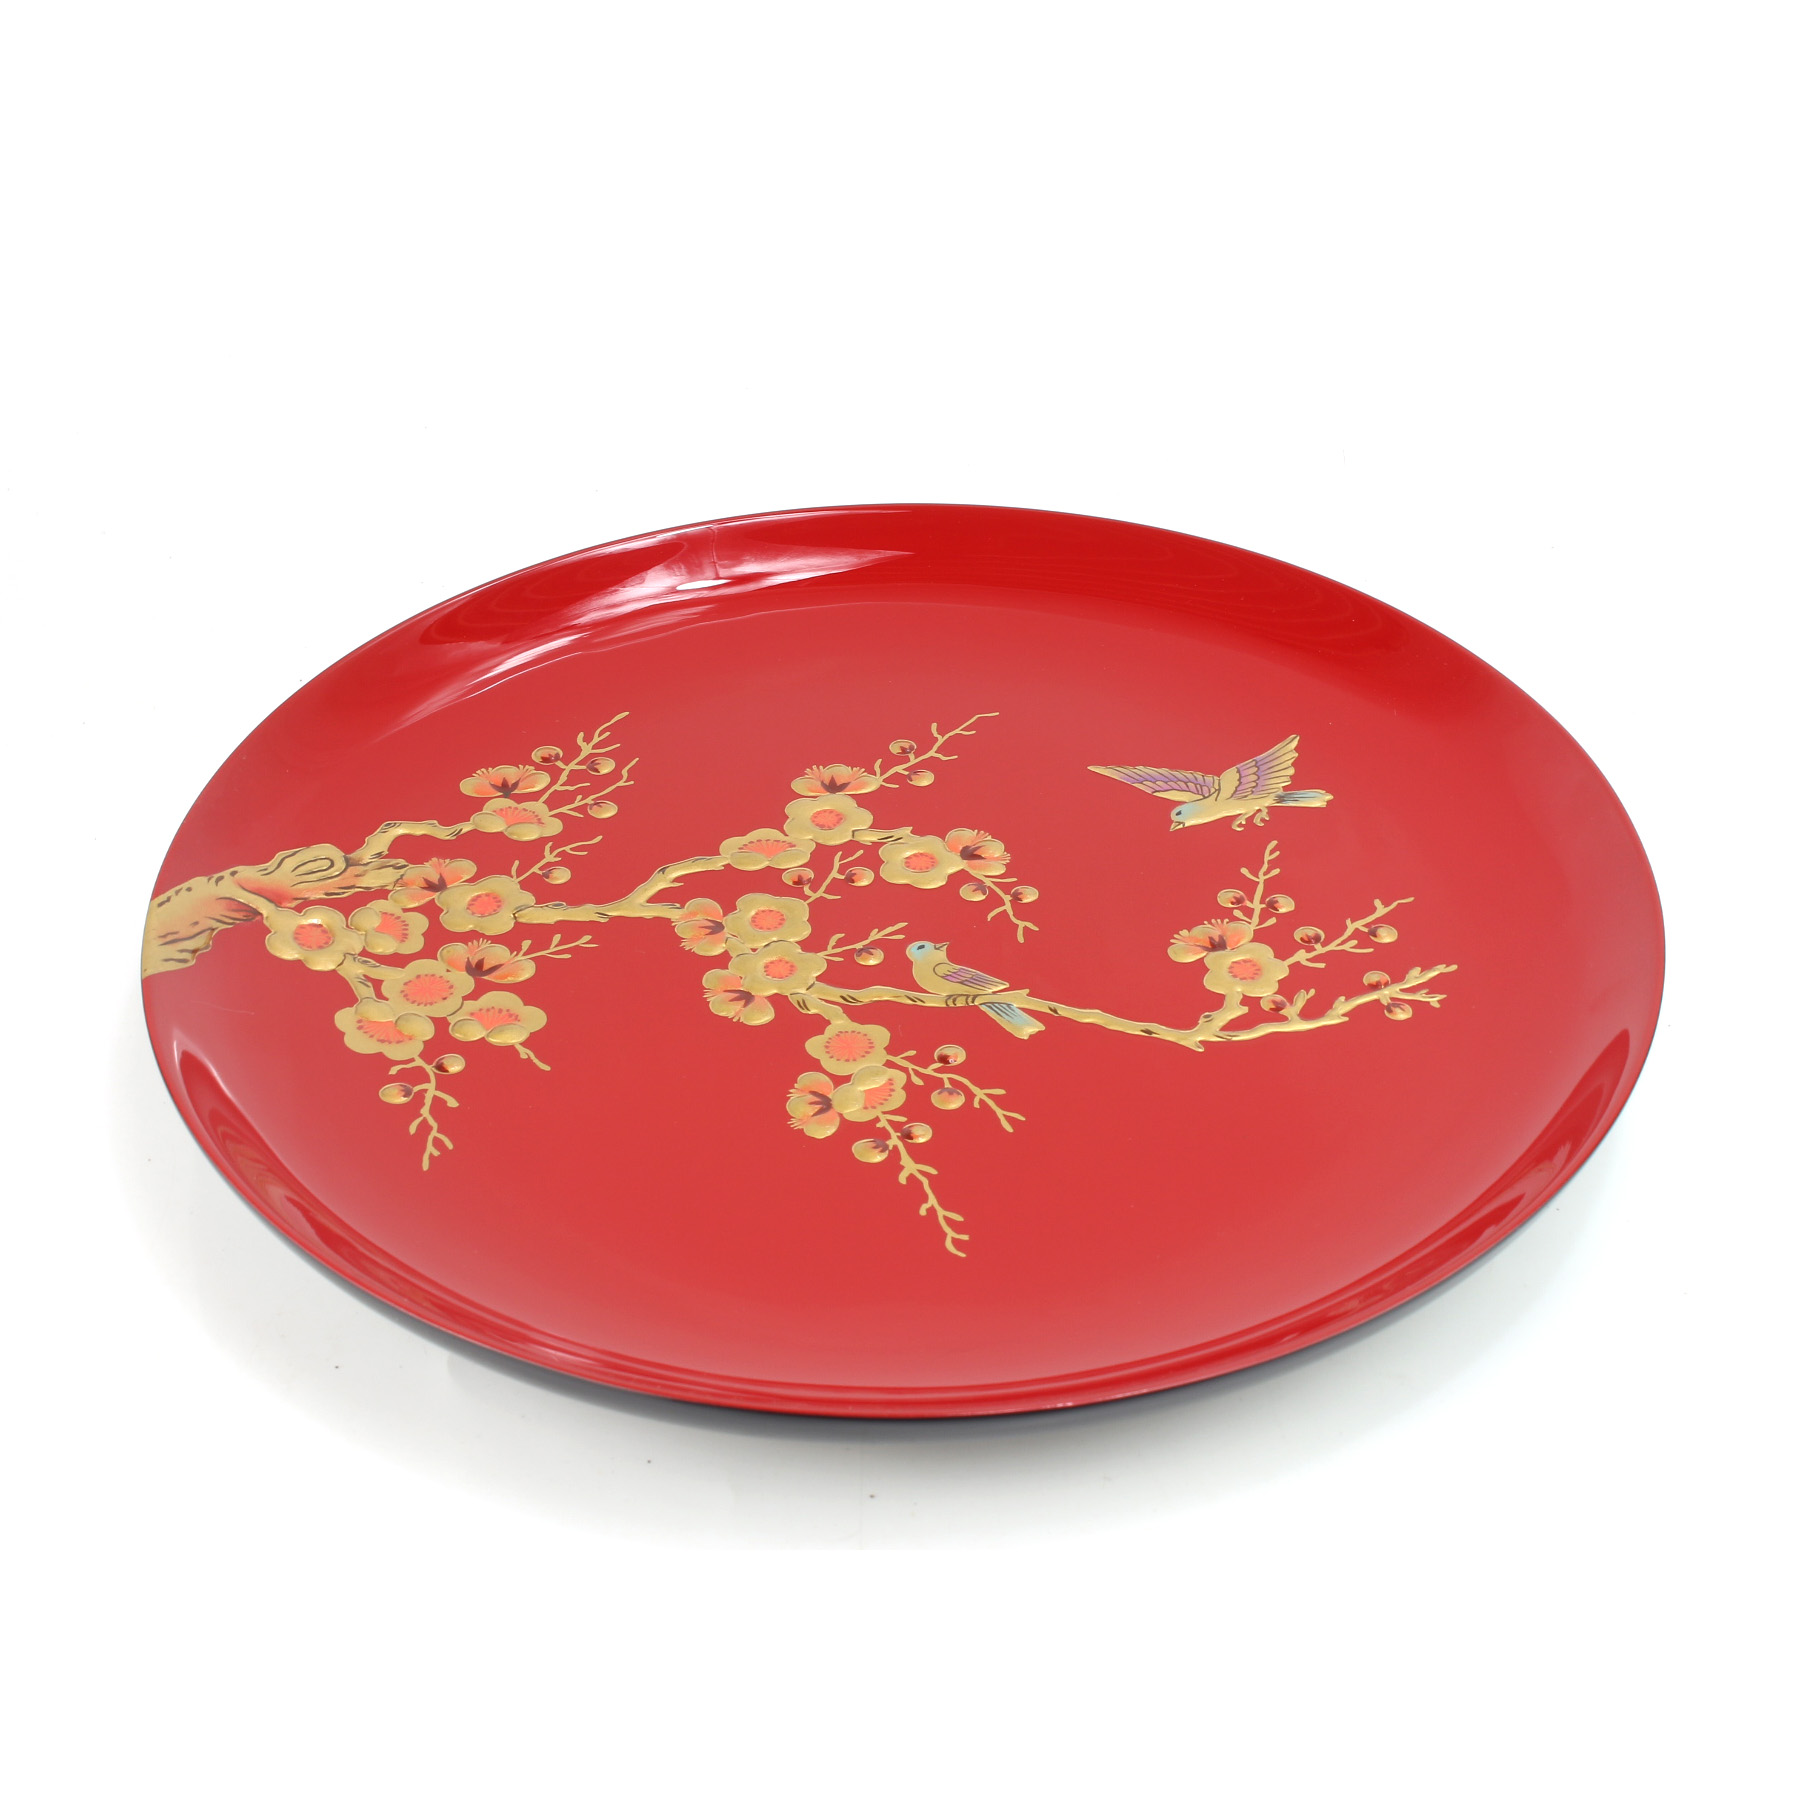 Hand-painted Lacquer Plate